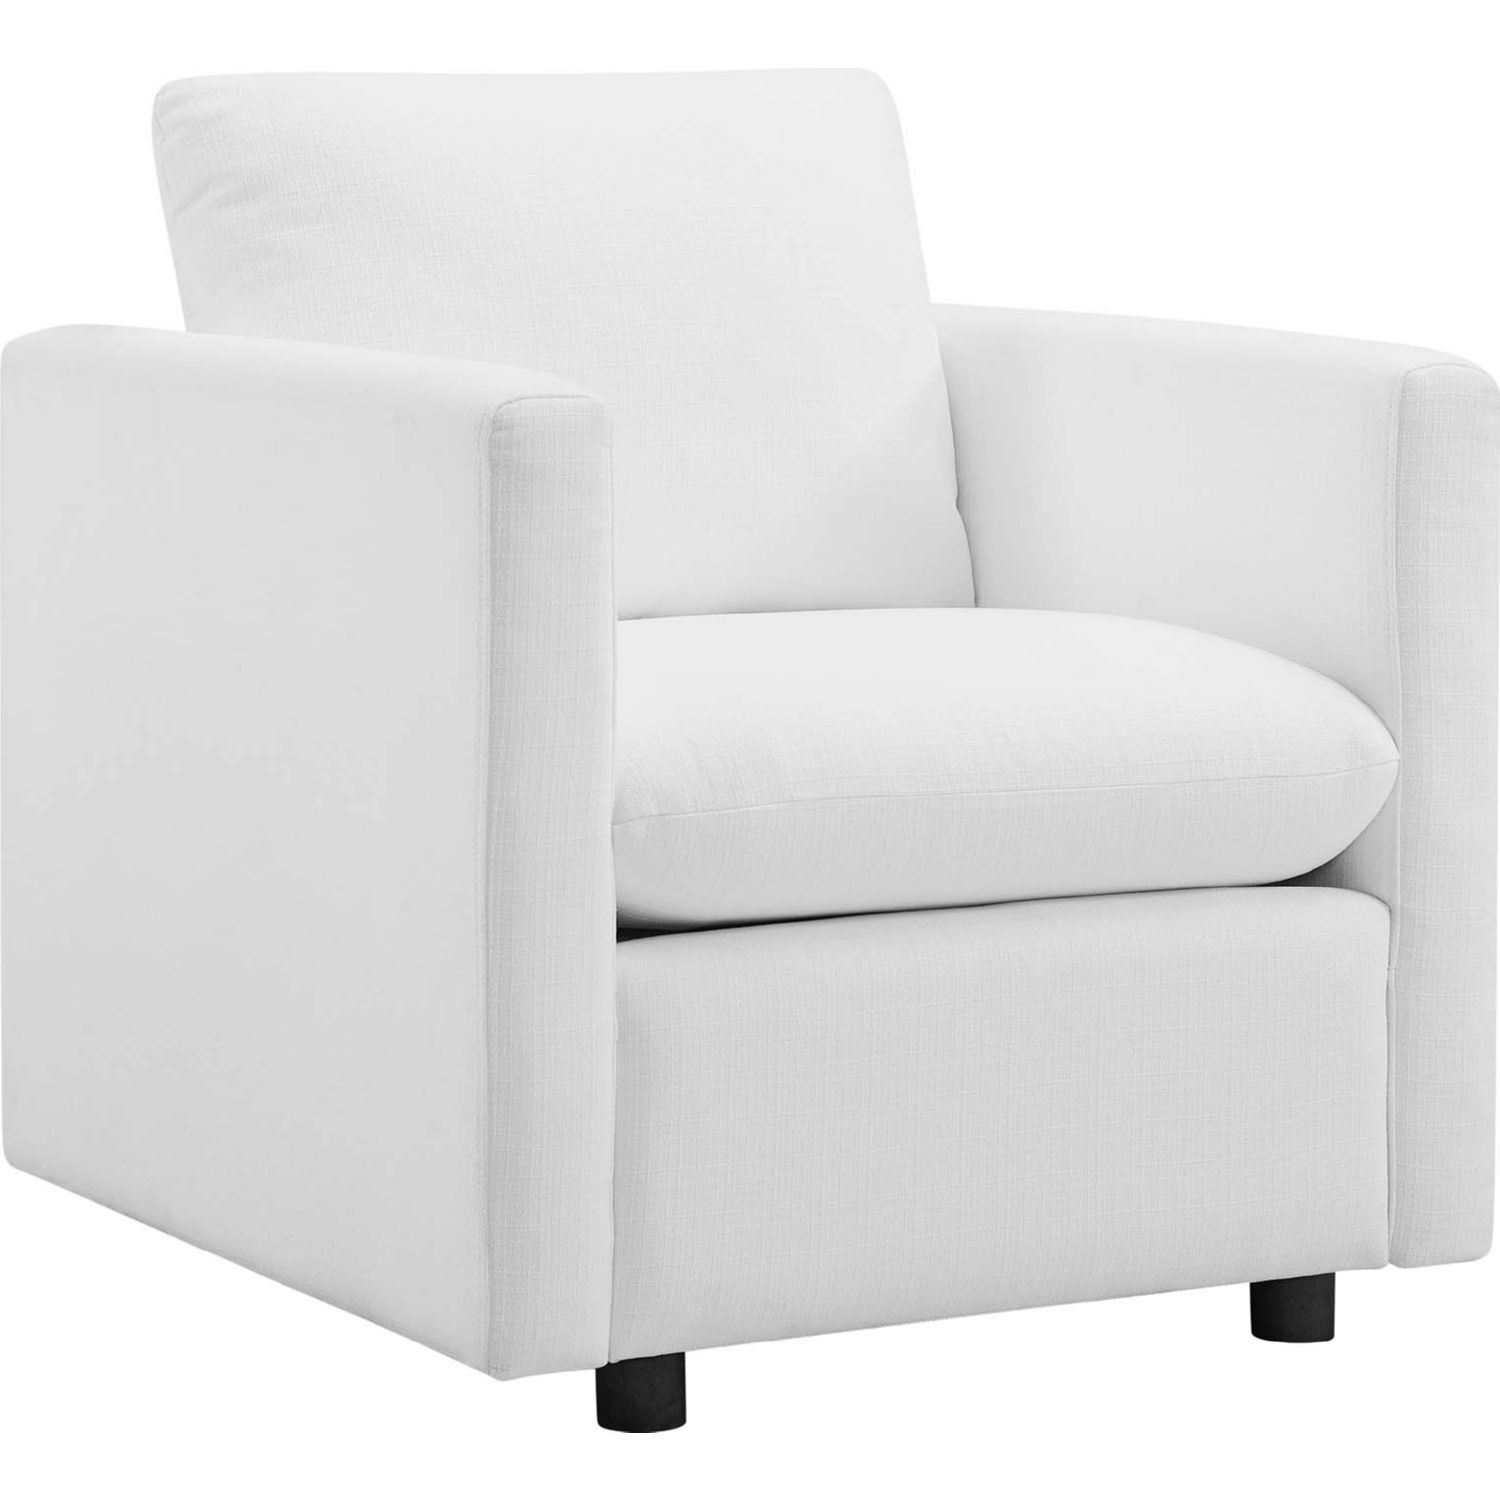 Modway Activate Arm Chair White Fabric Black Legs